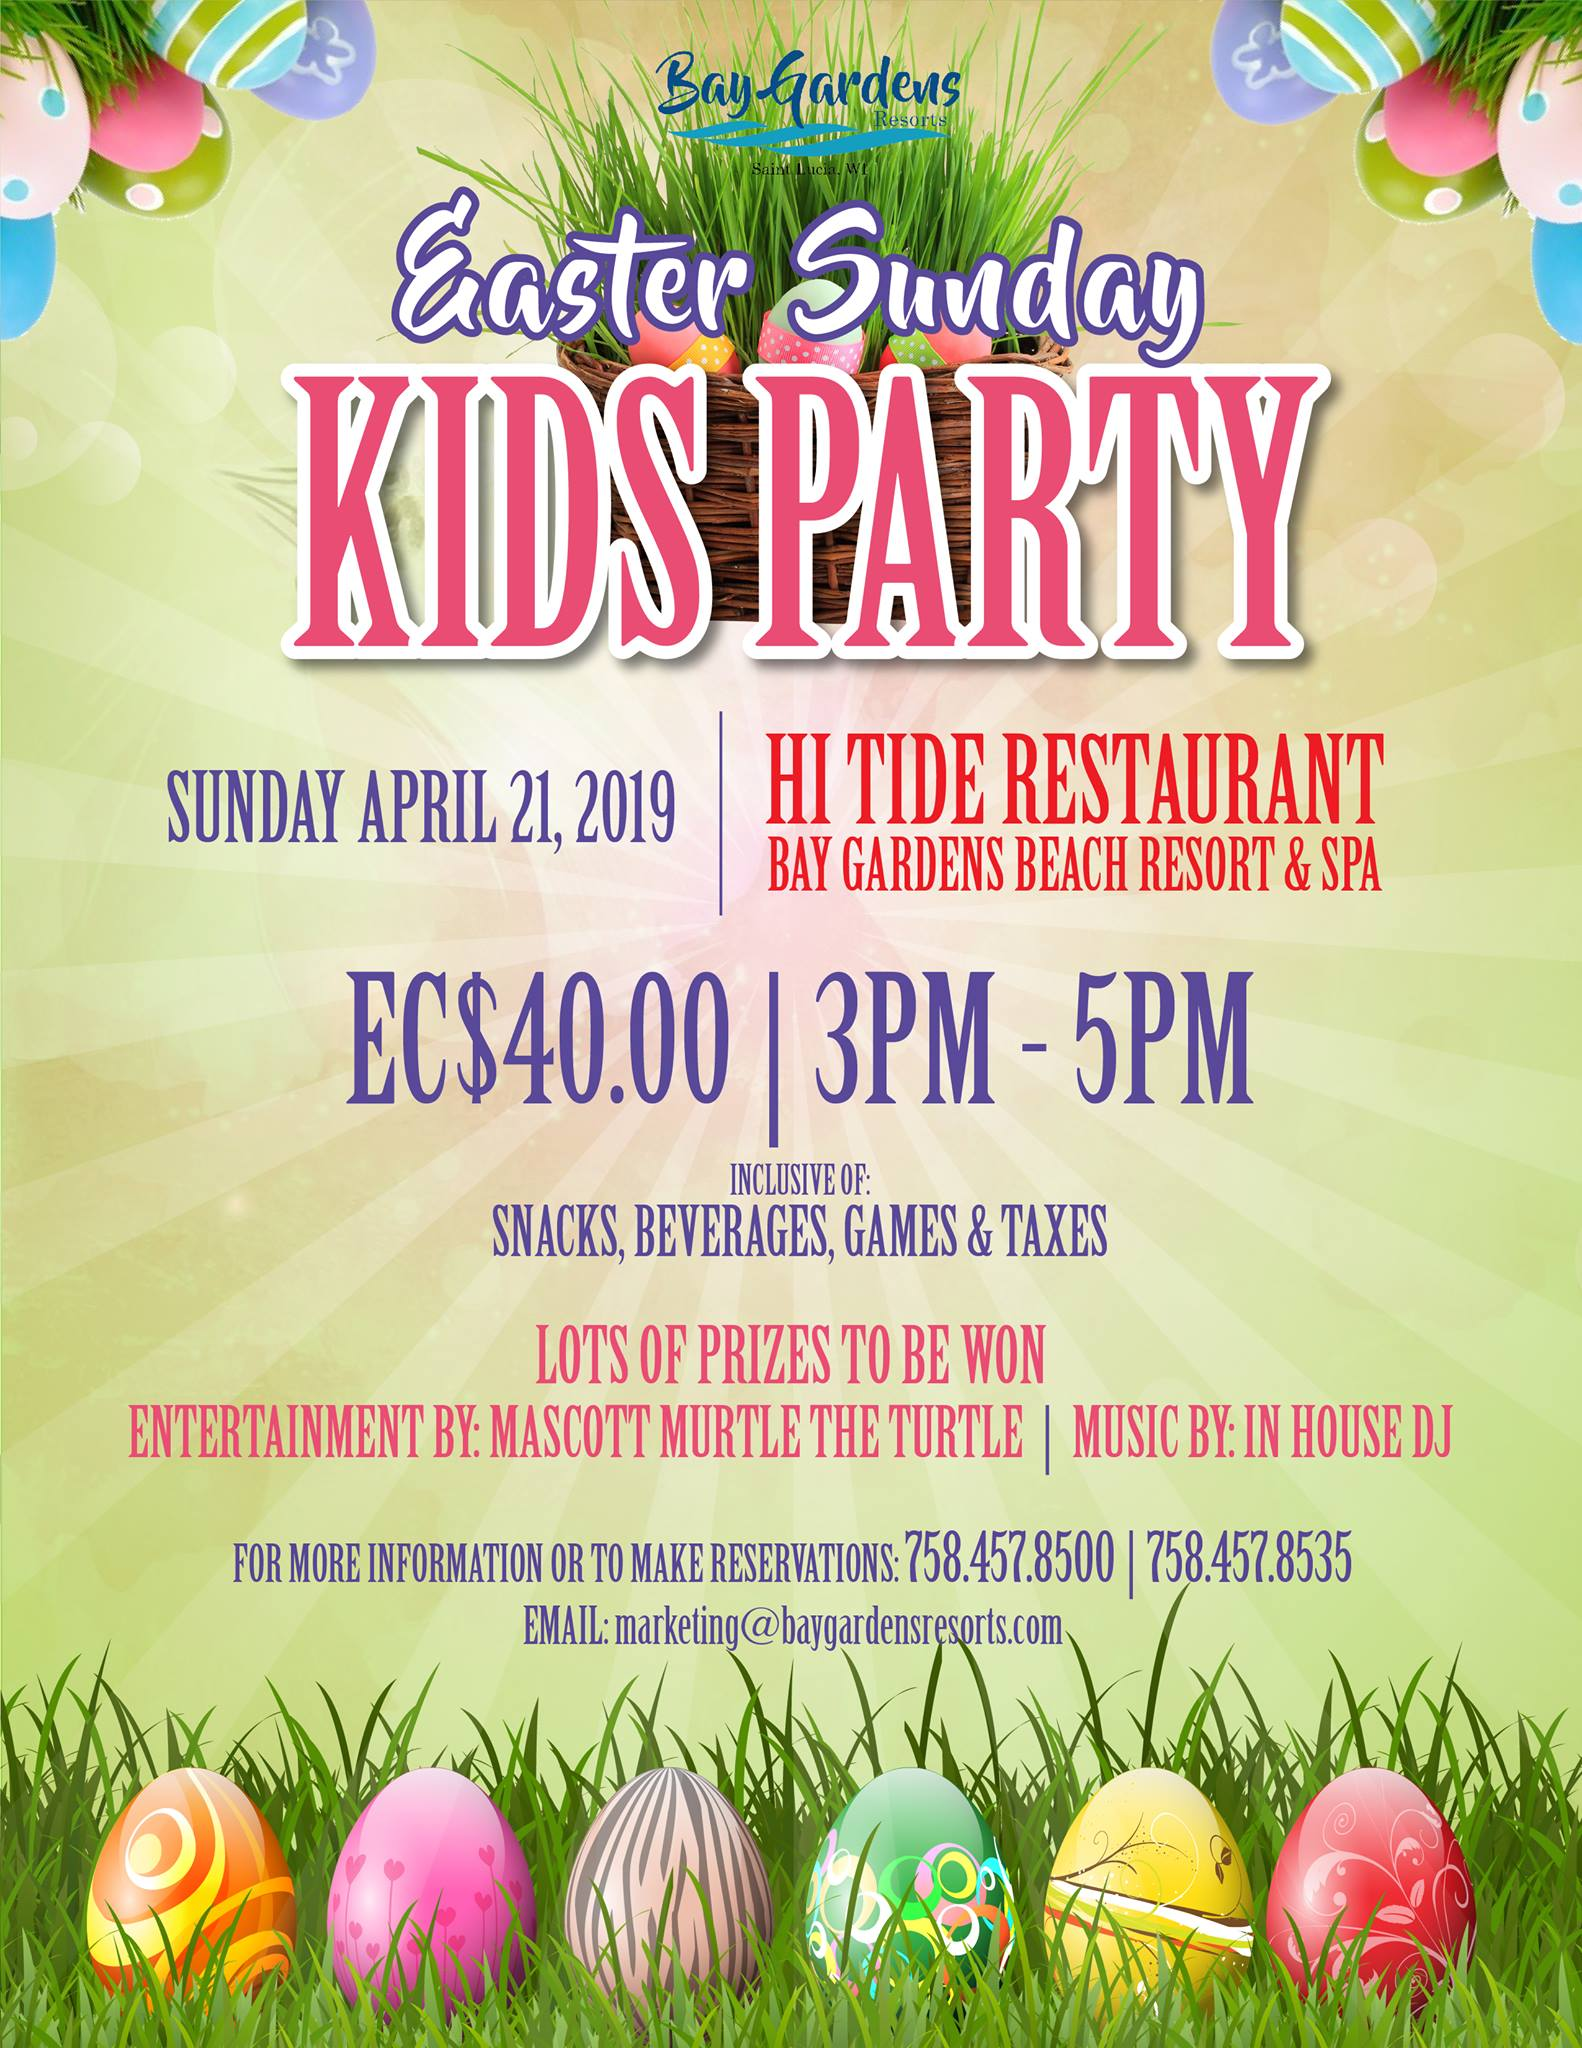 childrens easter events st lucia Kids Easter Party by Bay Gardens resort